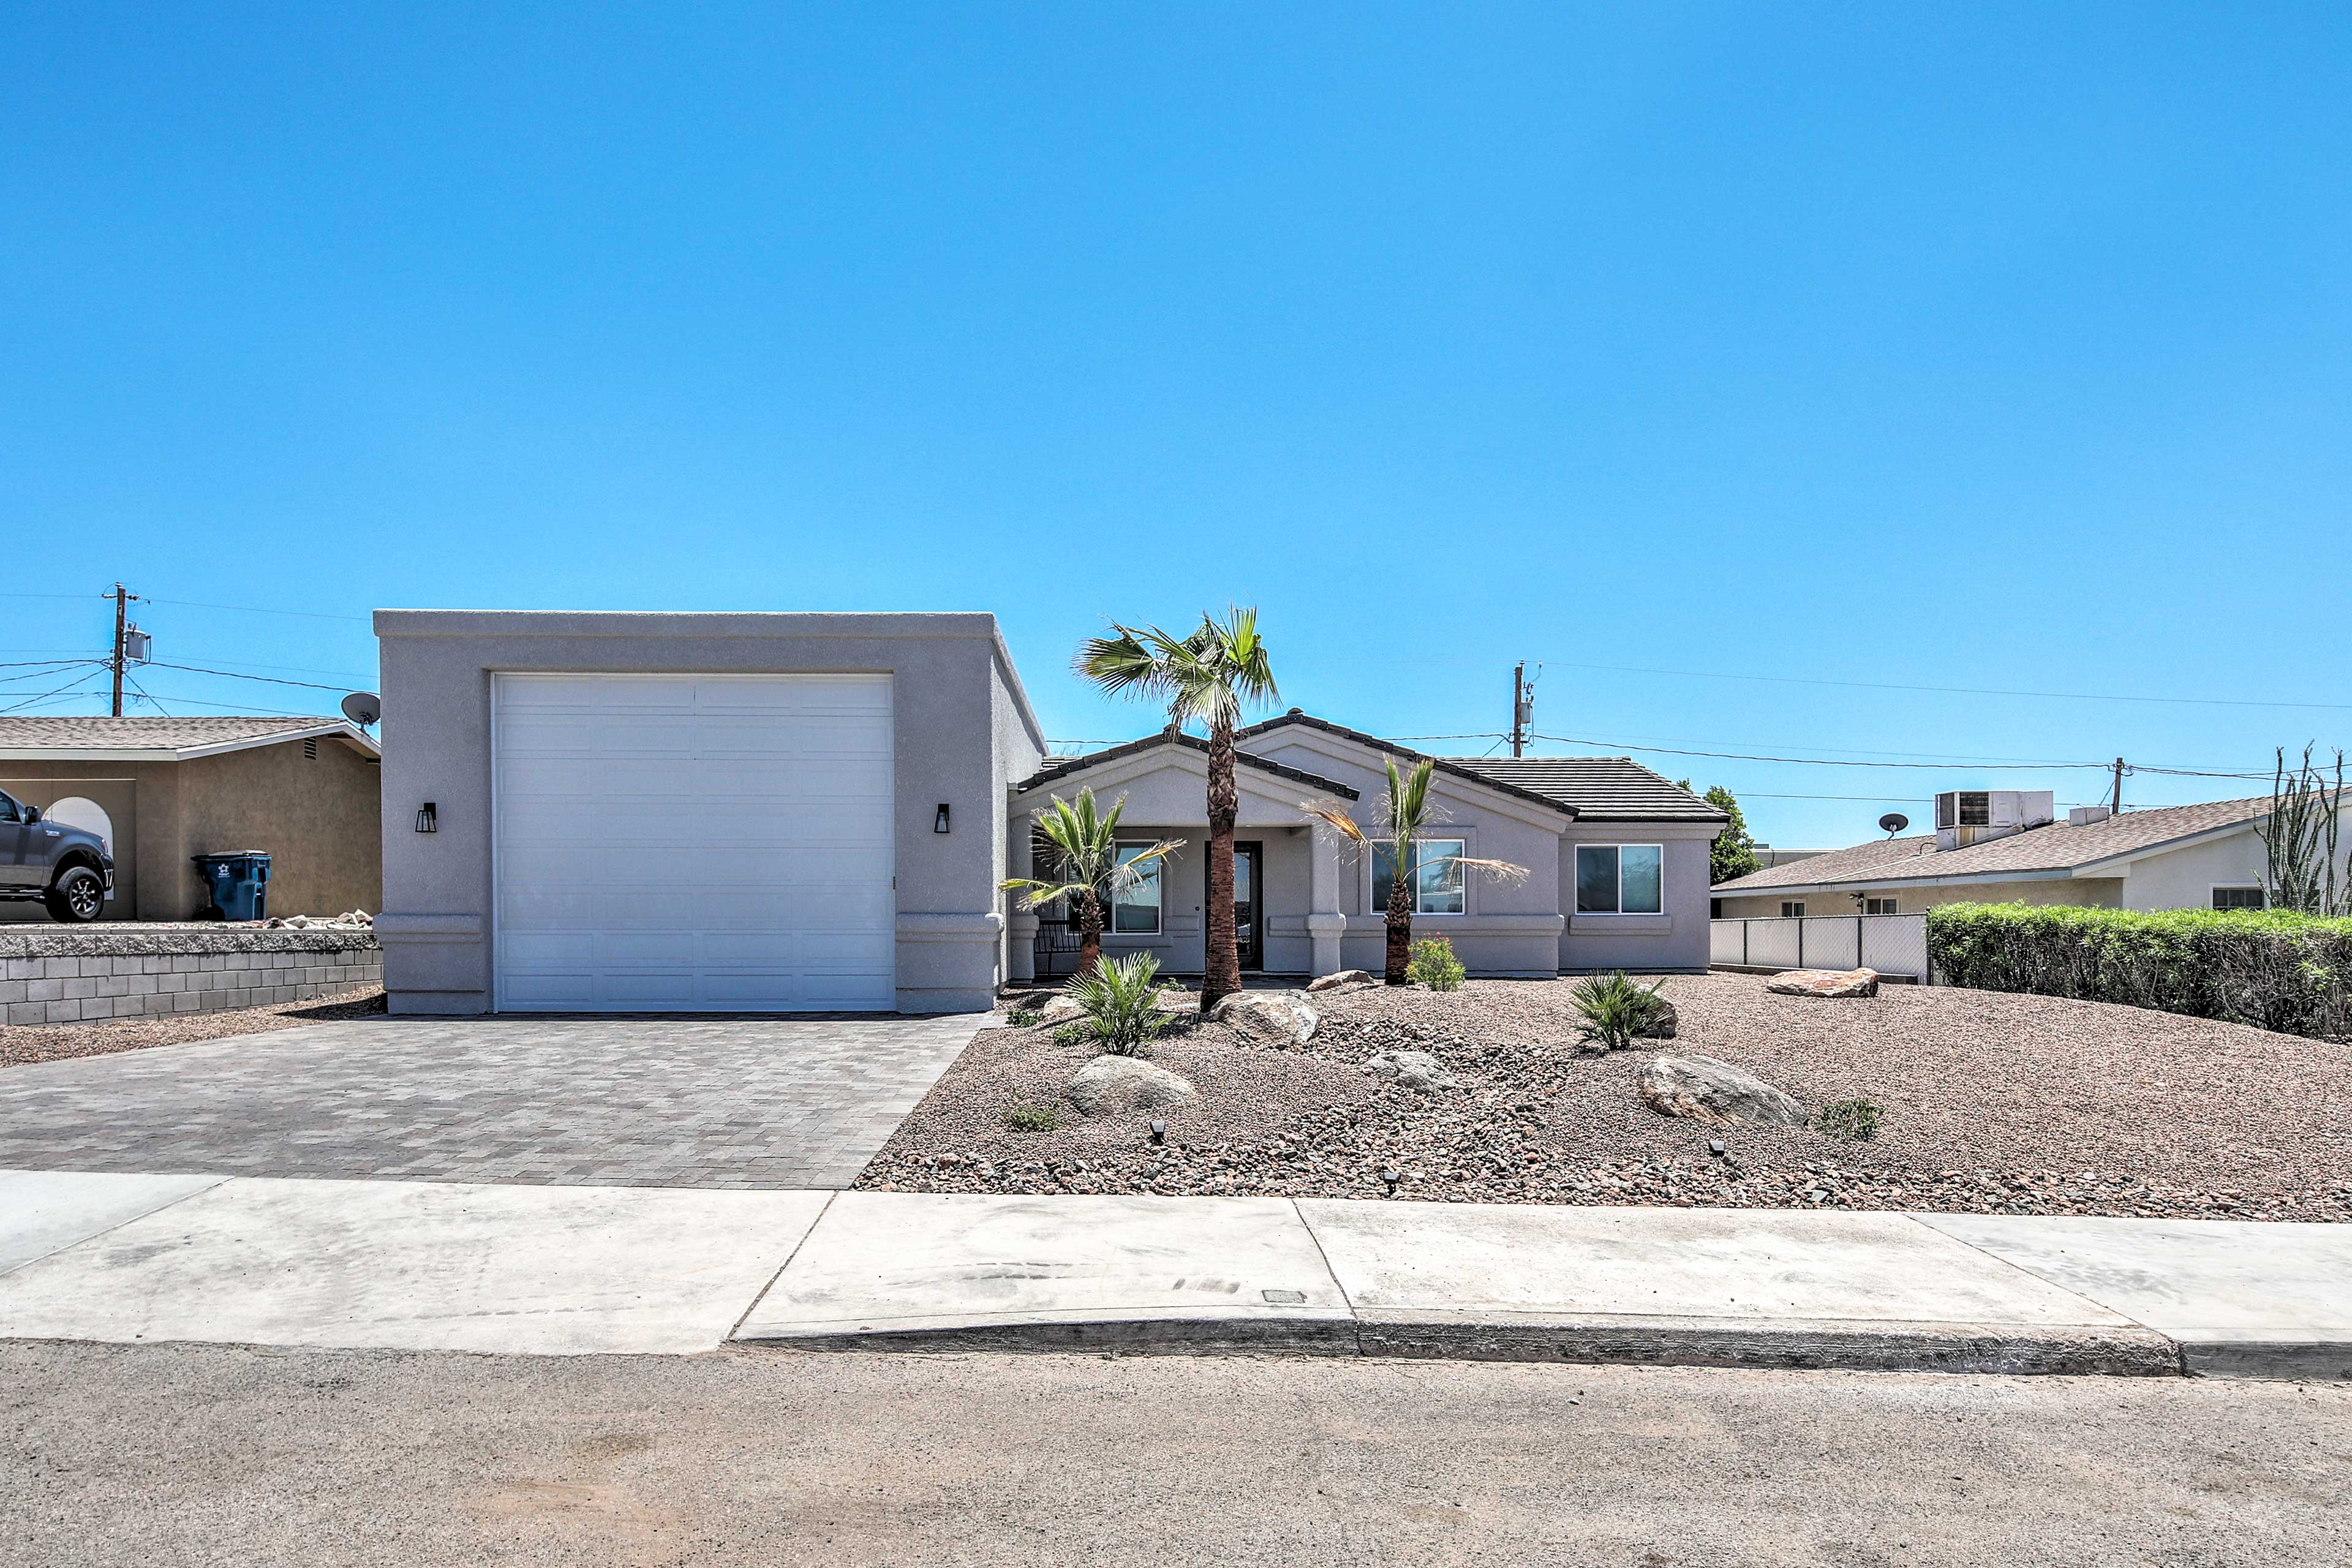 Garage, driveway, and street parking are available.